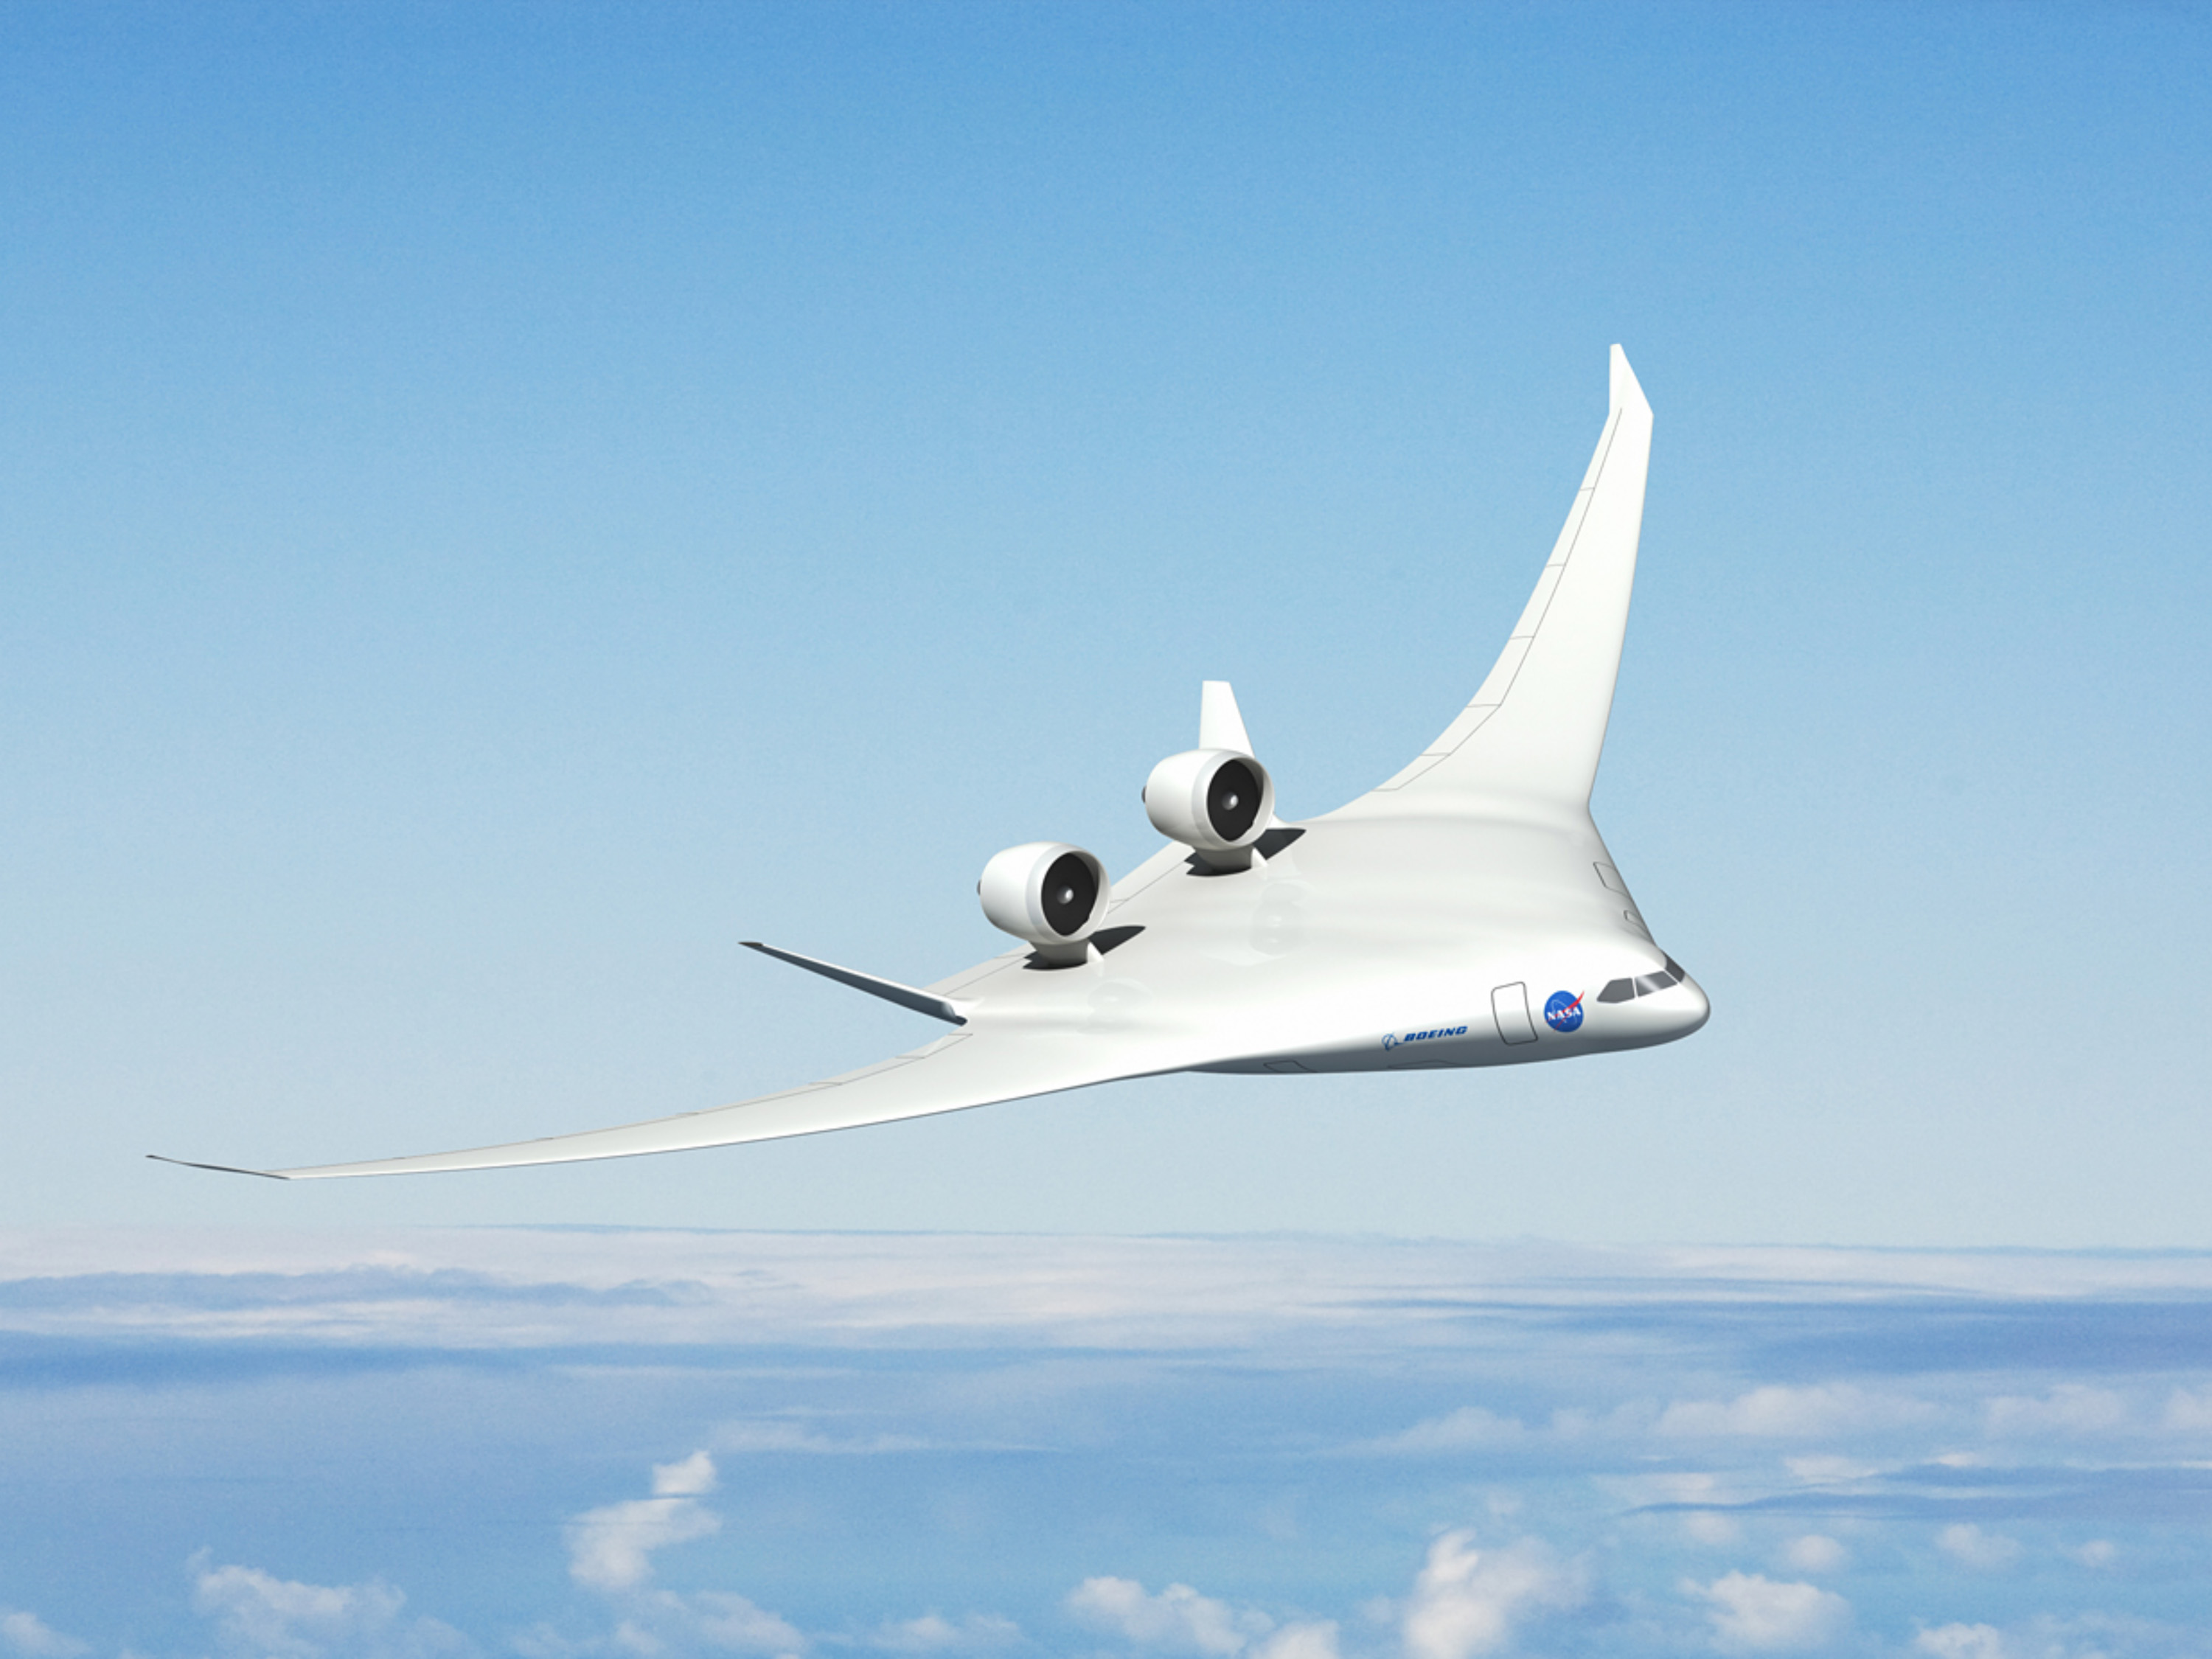 With the recent advances in technology and design aircraft concepts - 619090main_avc_boeing_concept_original_4x3_full Jpg The Boeing Company S Advanced Design Concept